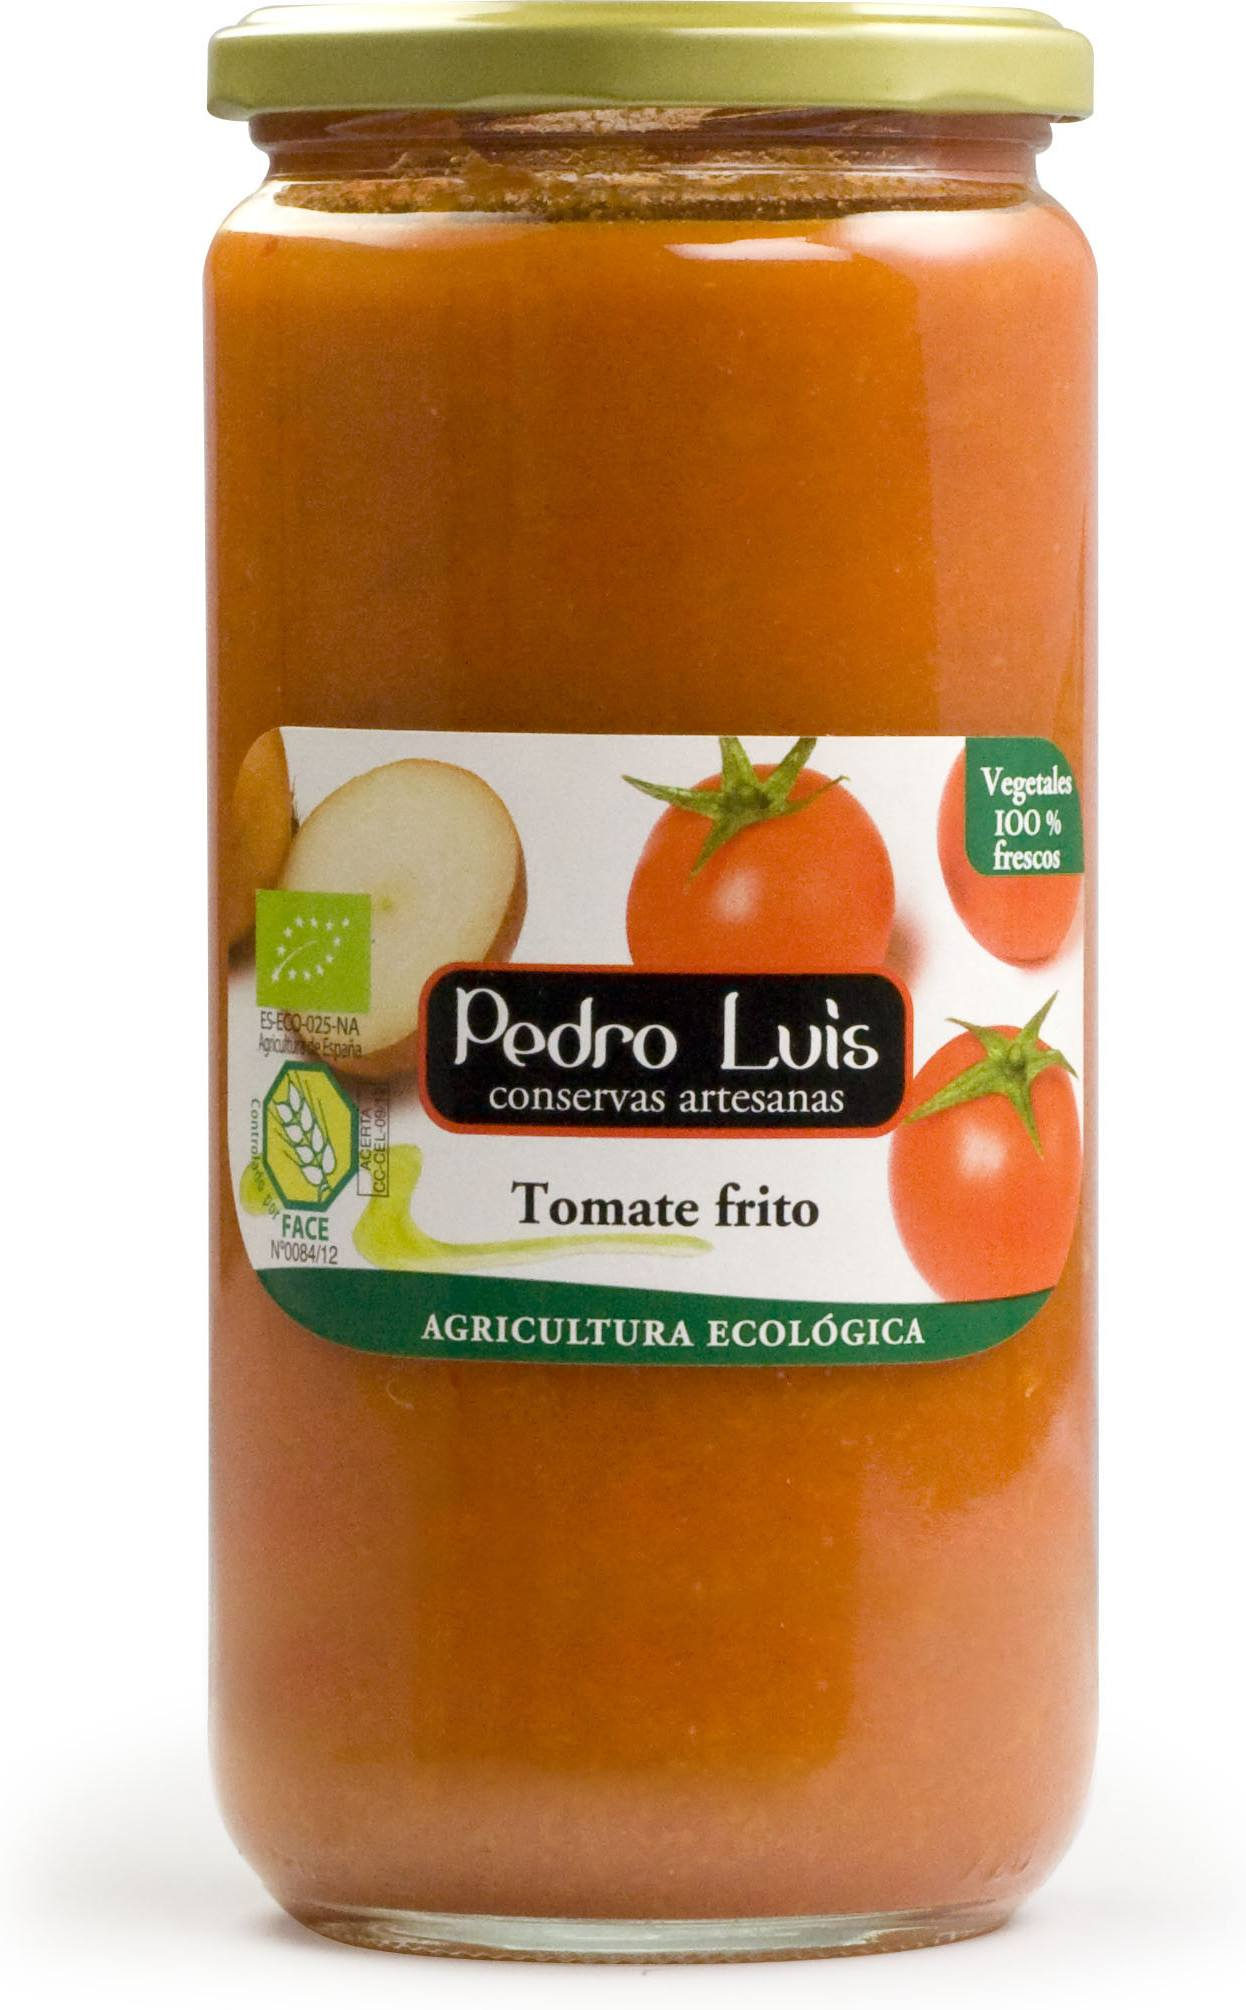 Pedro Luis Tomate Frito Eco S/g Fco. 660 Grs P.n.